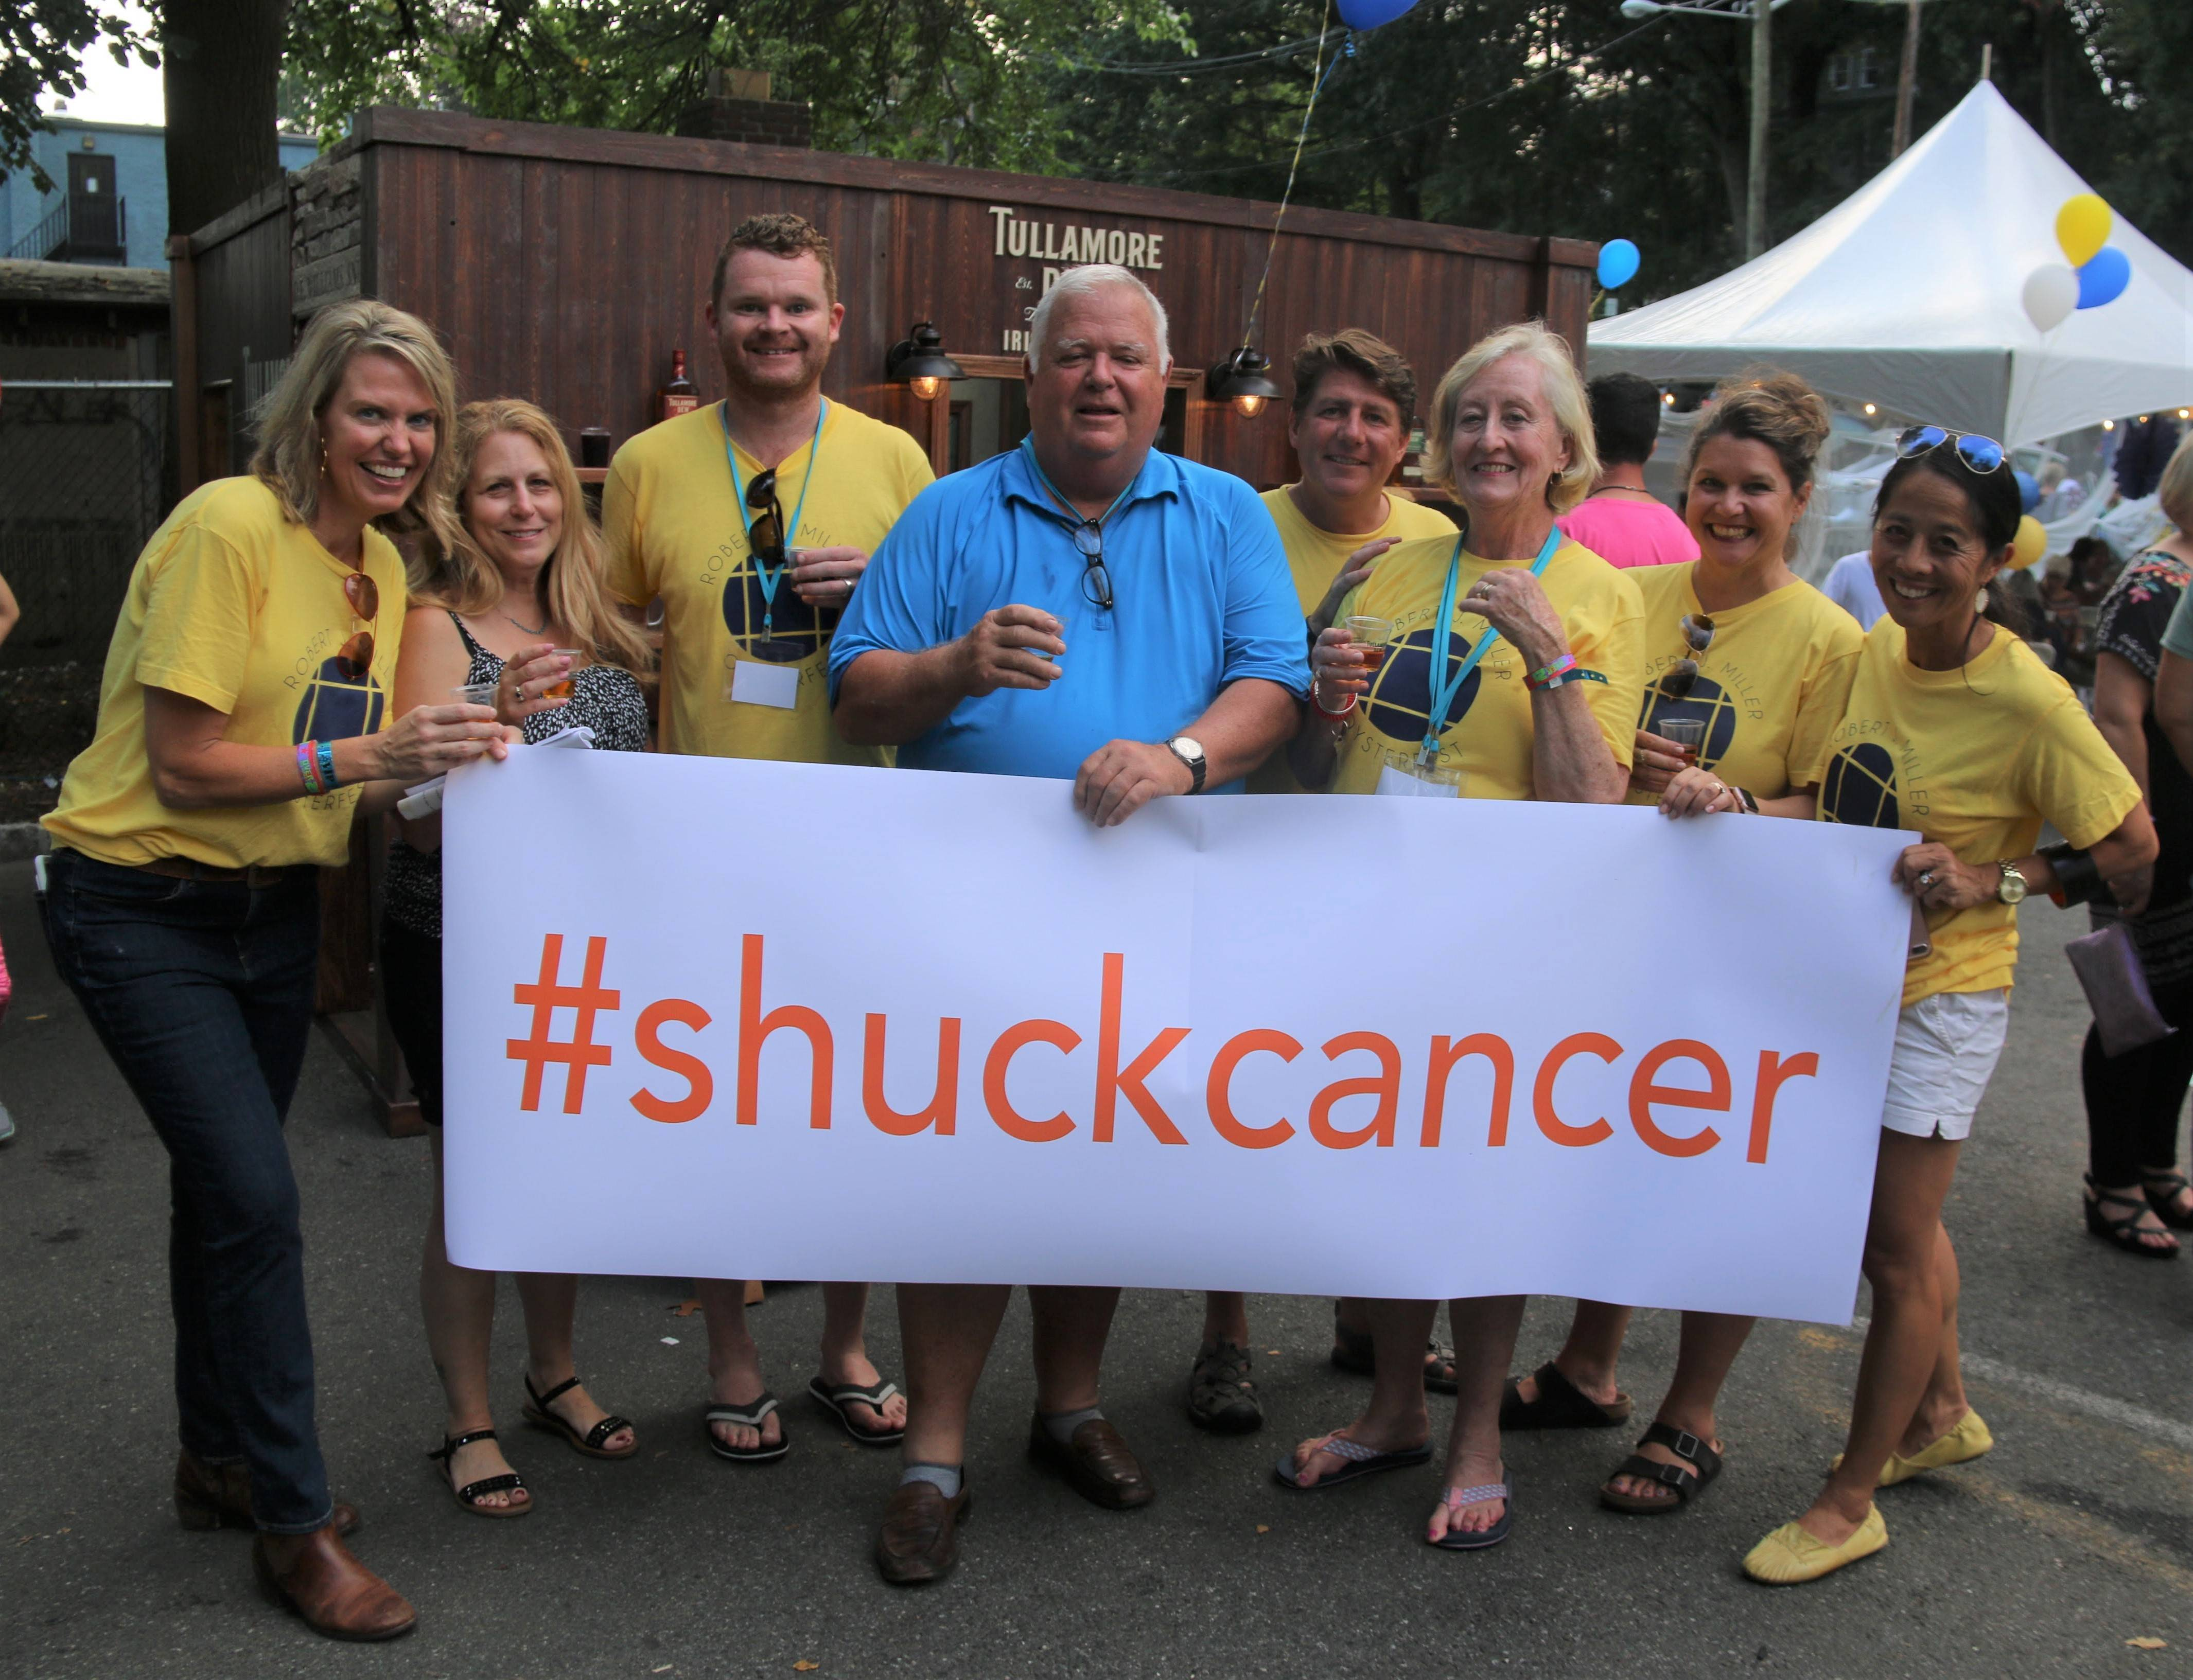 Oysterfest for Melanoma Awareness is September 15 in Maplewood